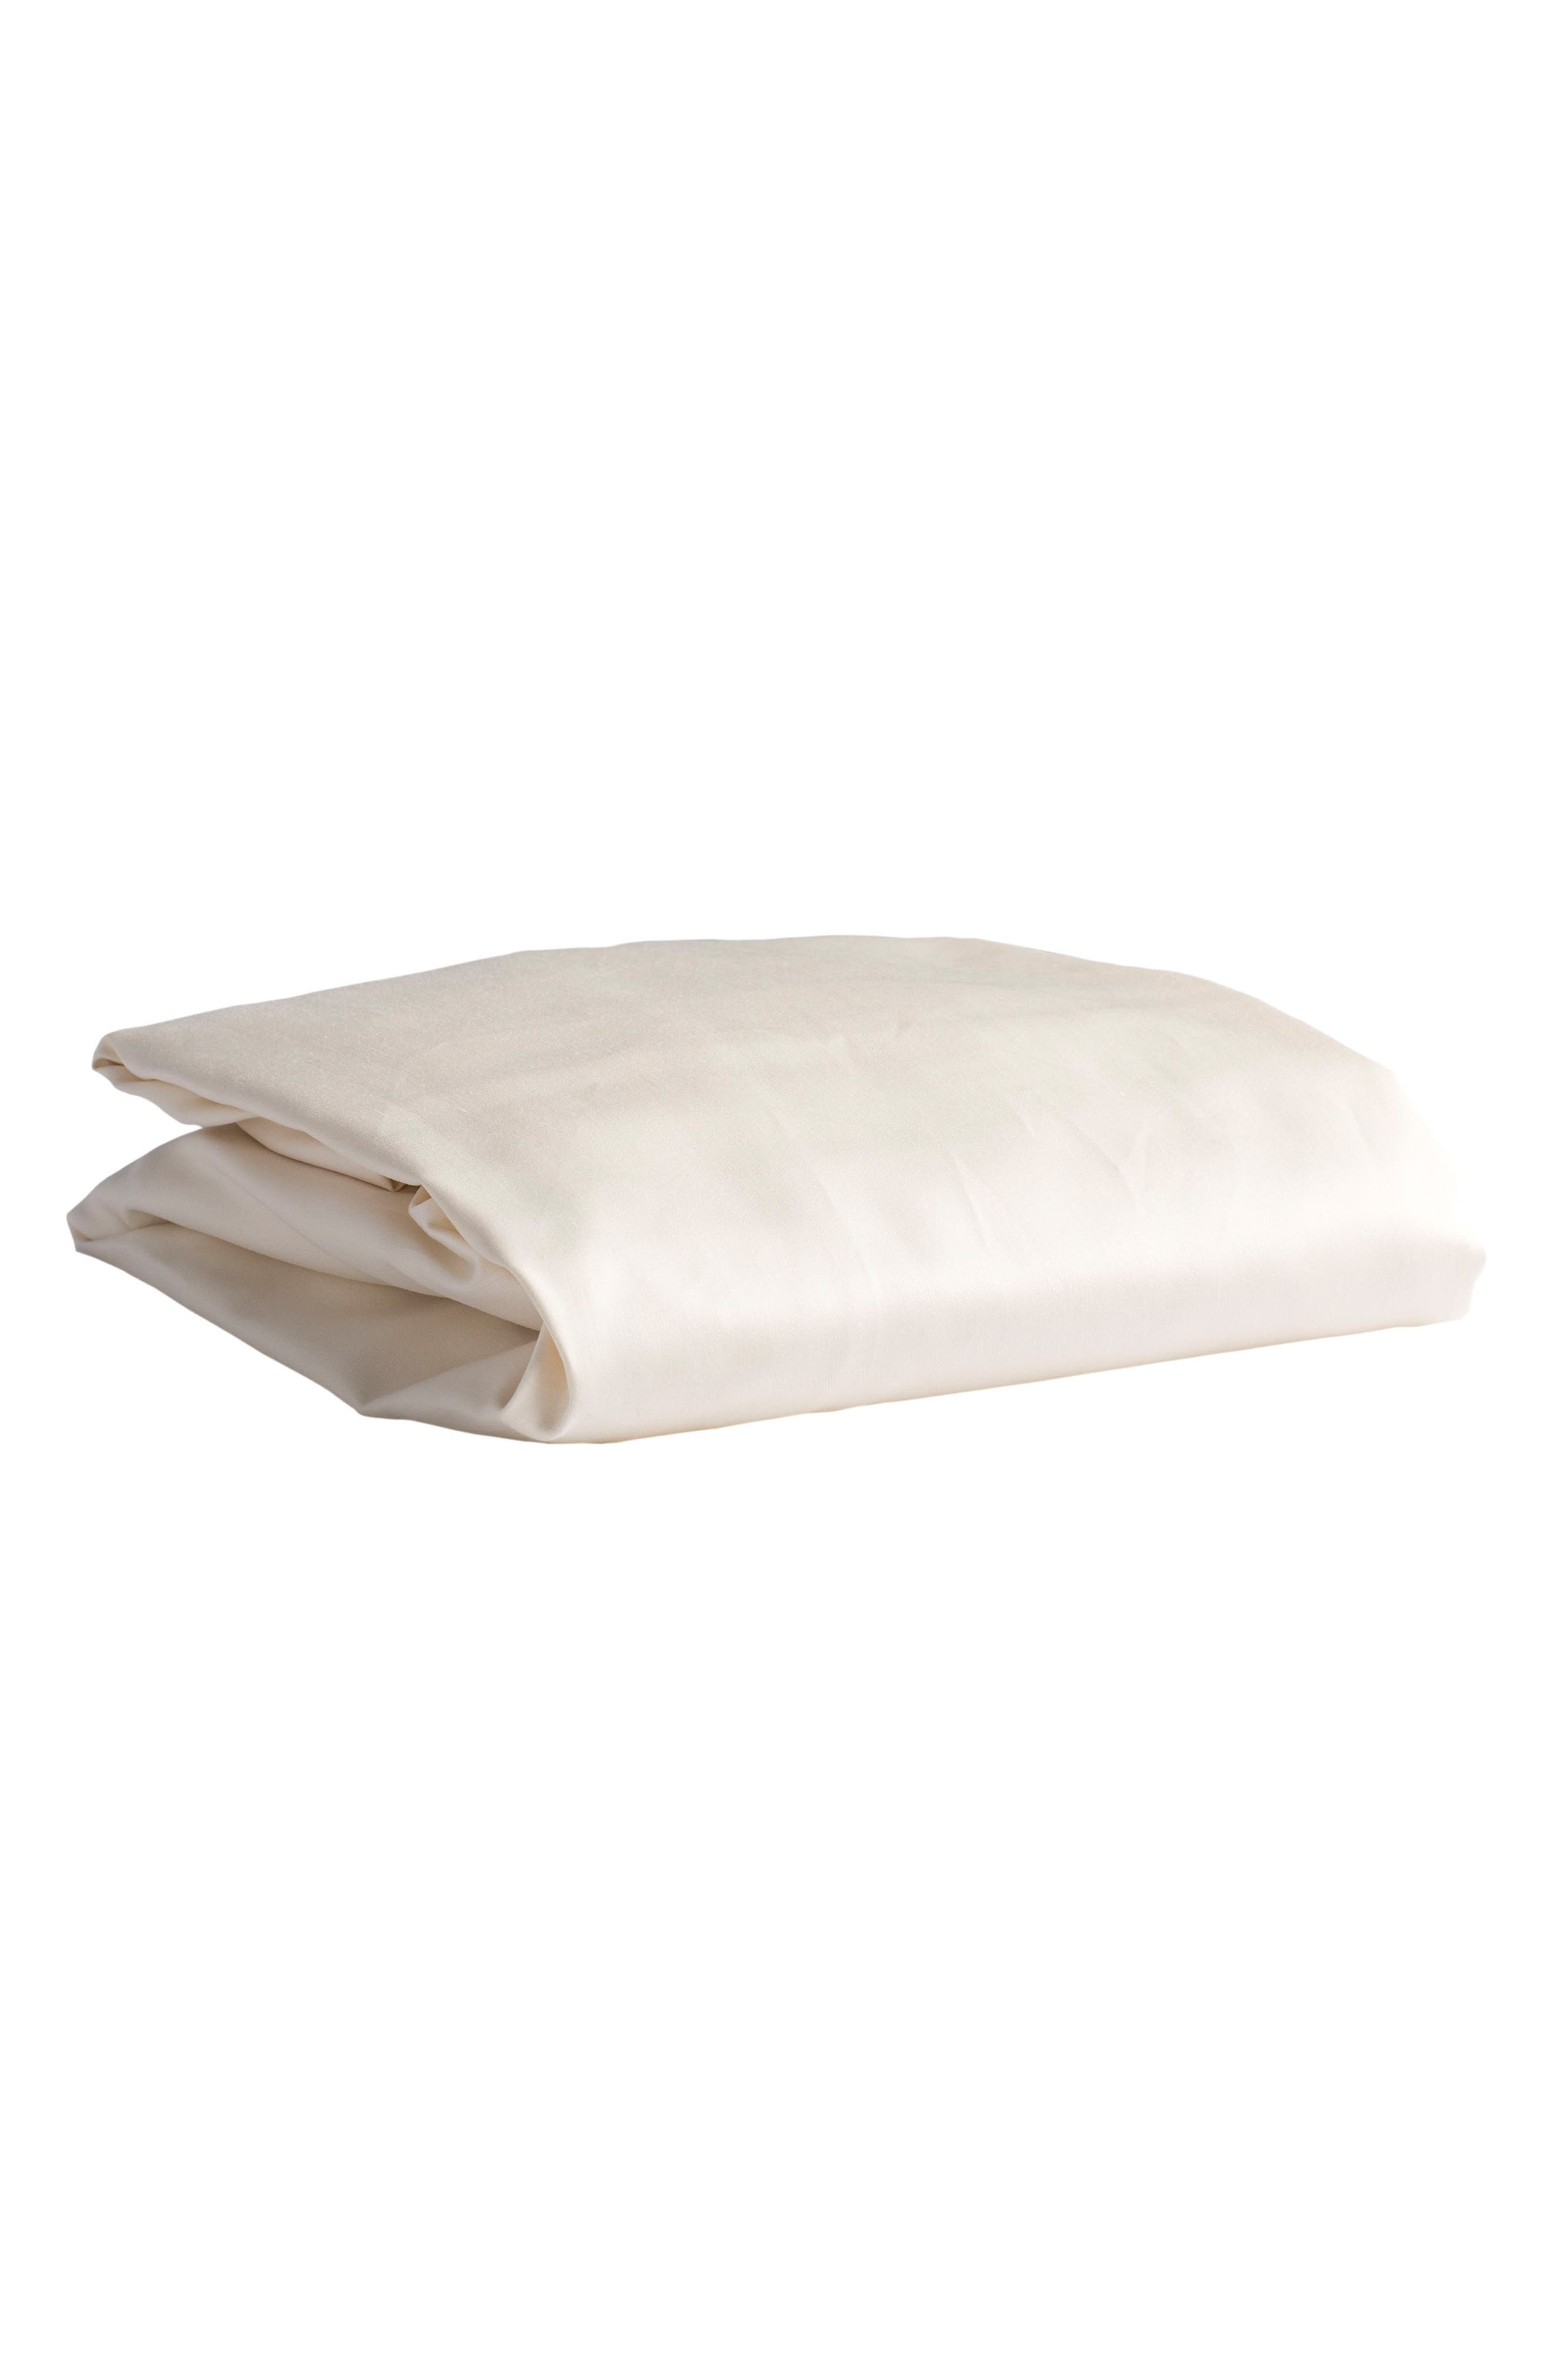 x Rosie Pope Pure & Secure Organic Cotton Fitted Crib Sheet,                             Main thumbnail 1, color,                             NATURAL